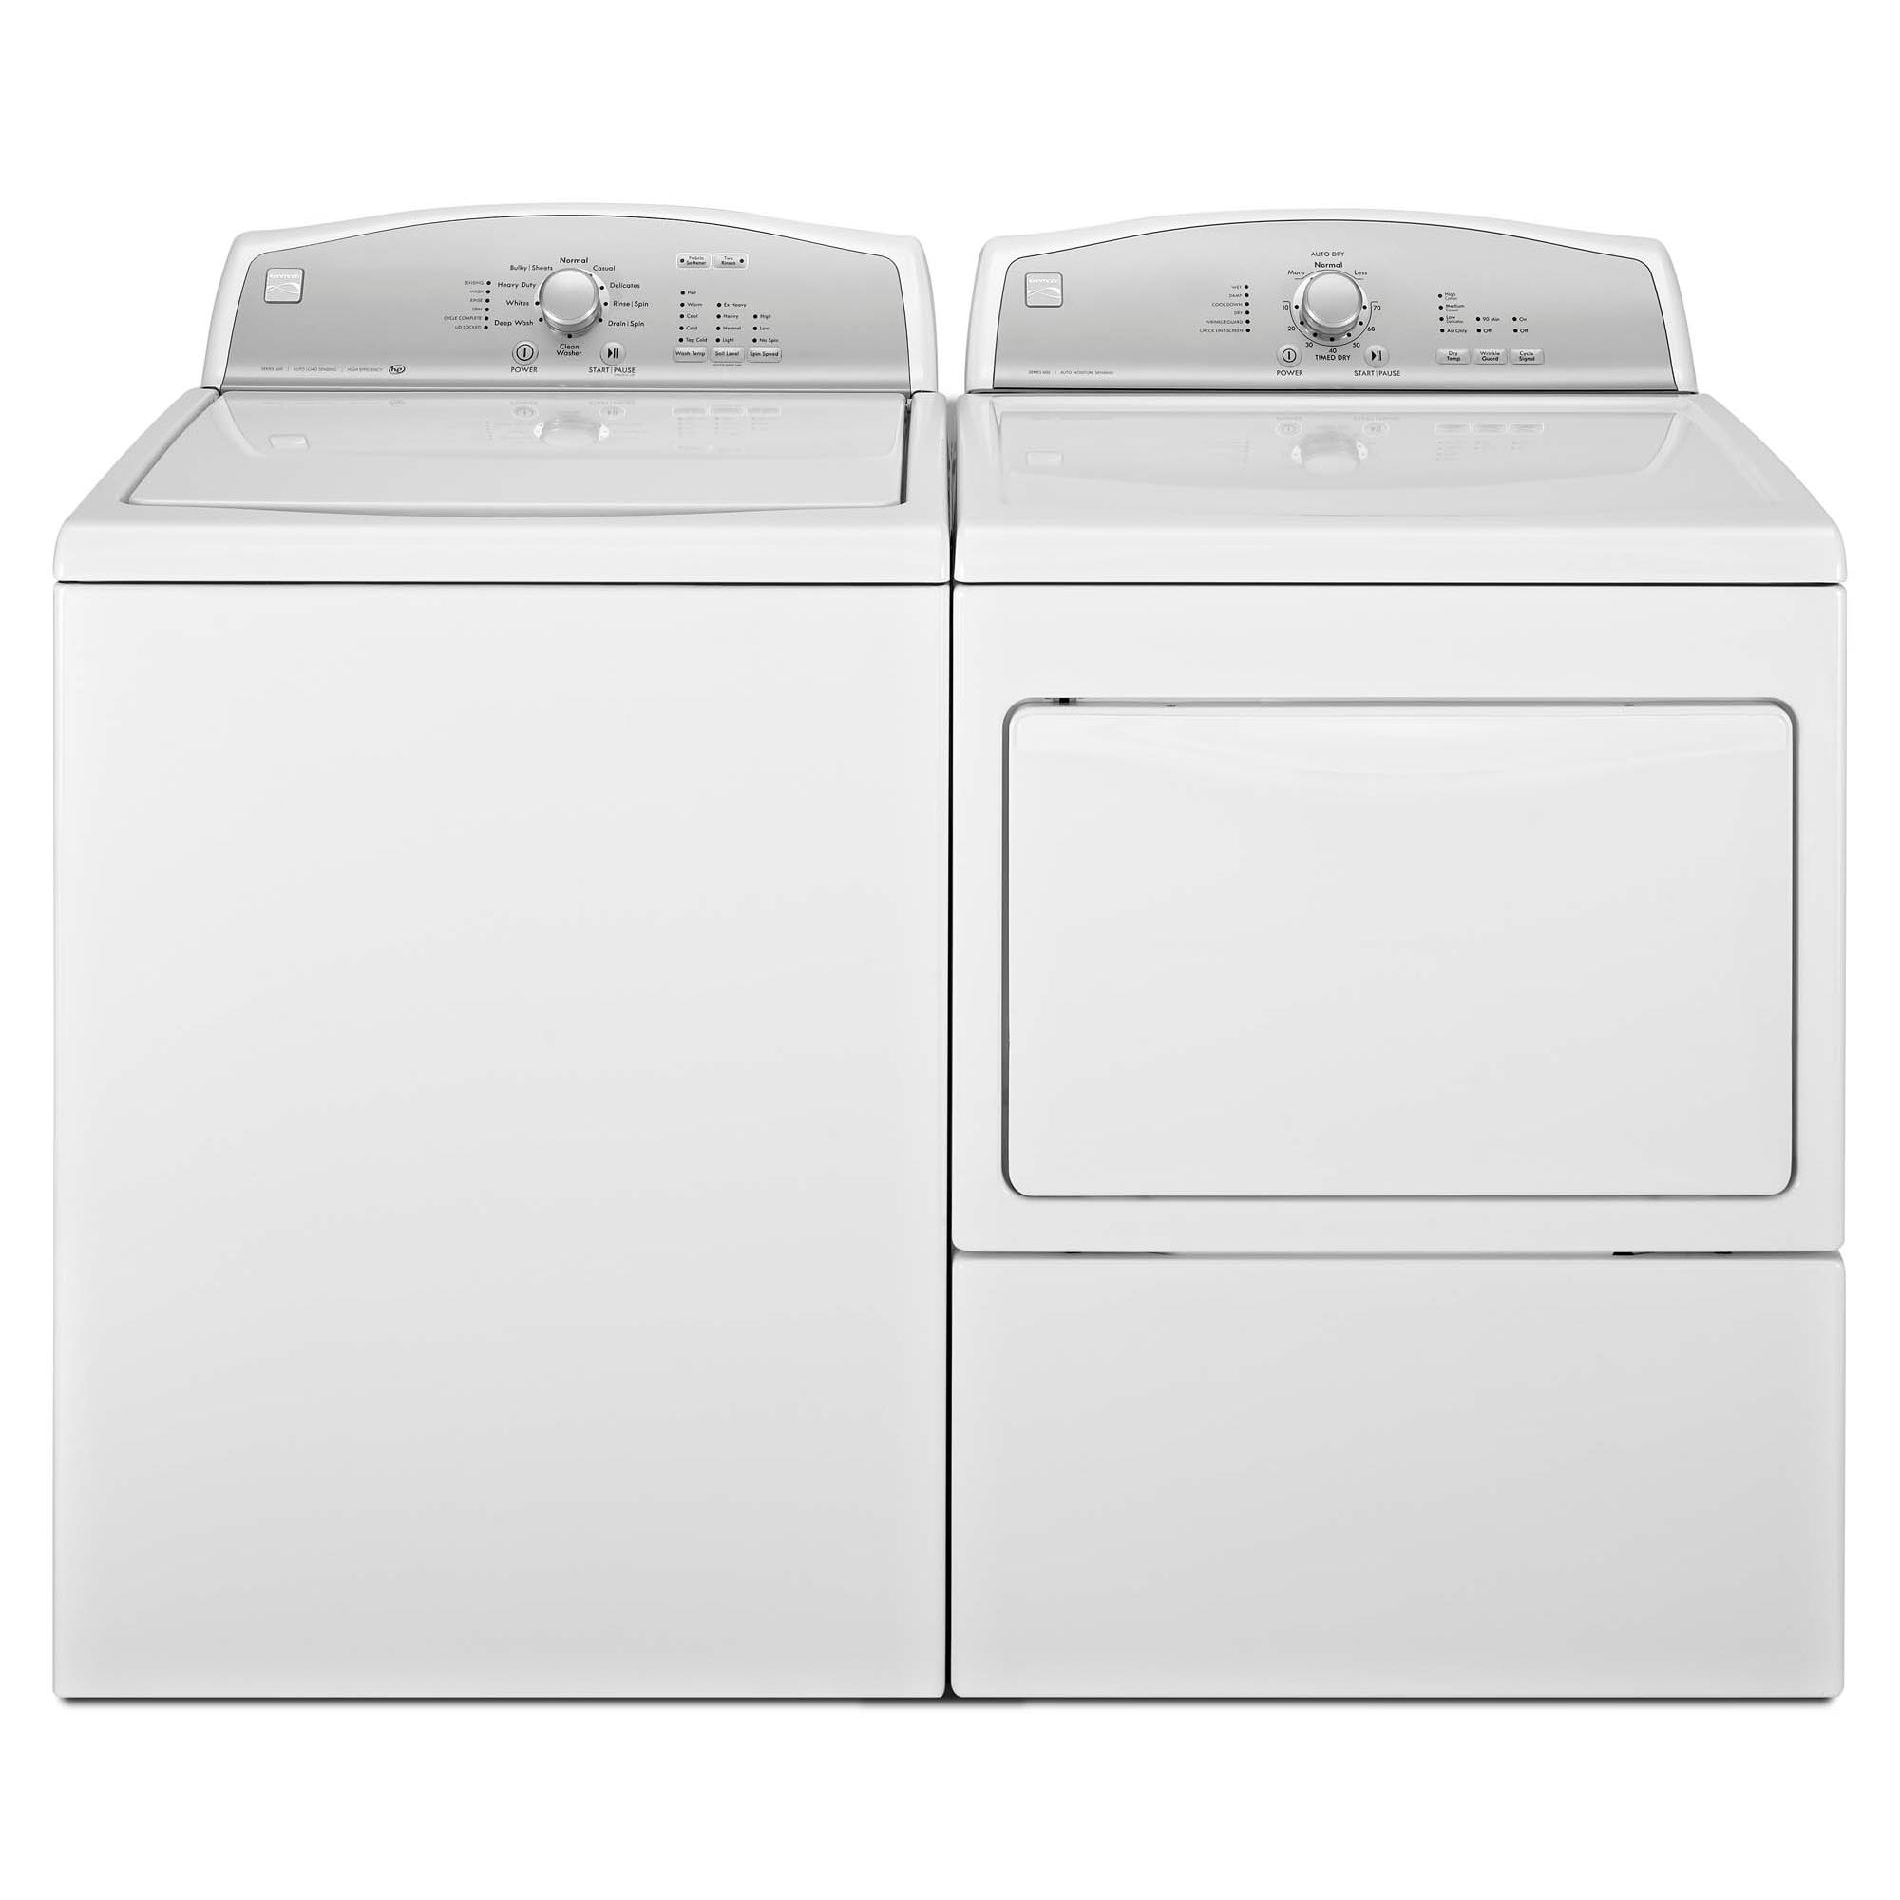 Kenmore 27102 3.8 cu. ft. High-Efficiency Top-Load Washer w/ Deep Wash - White